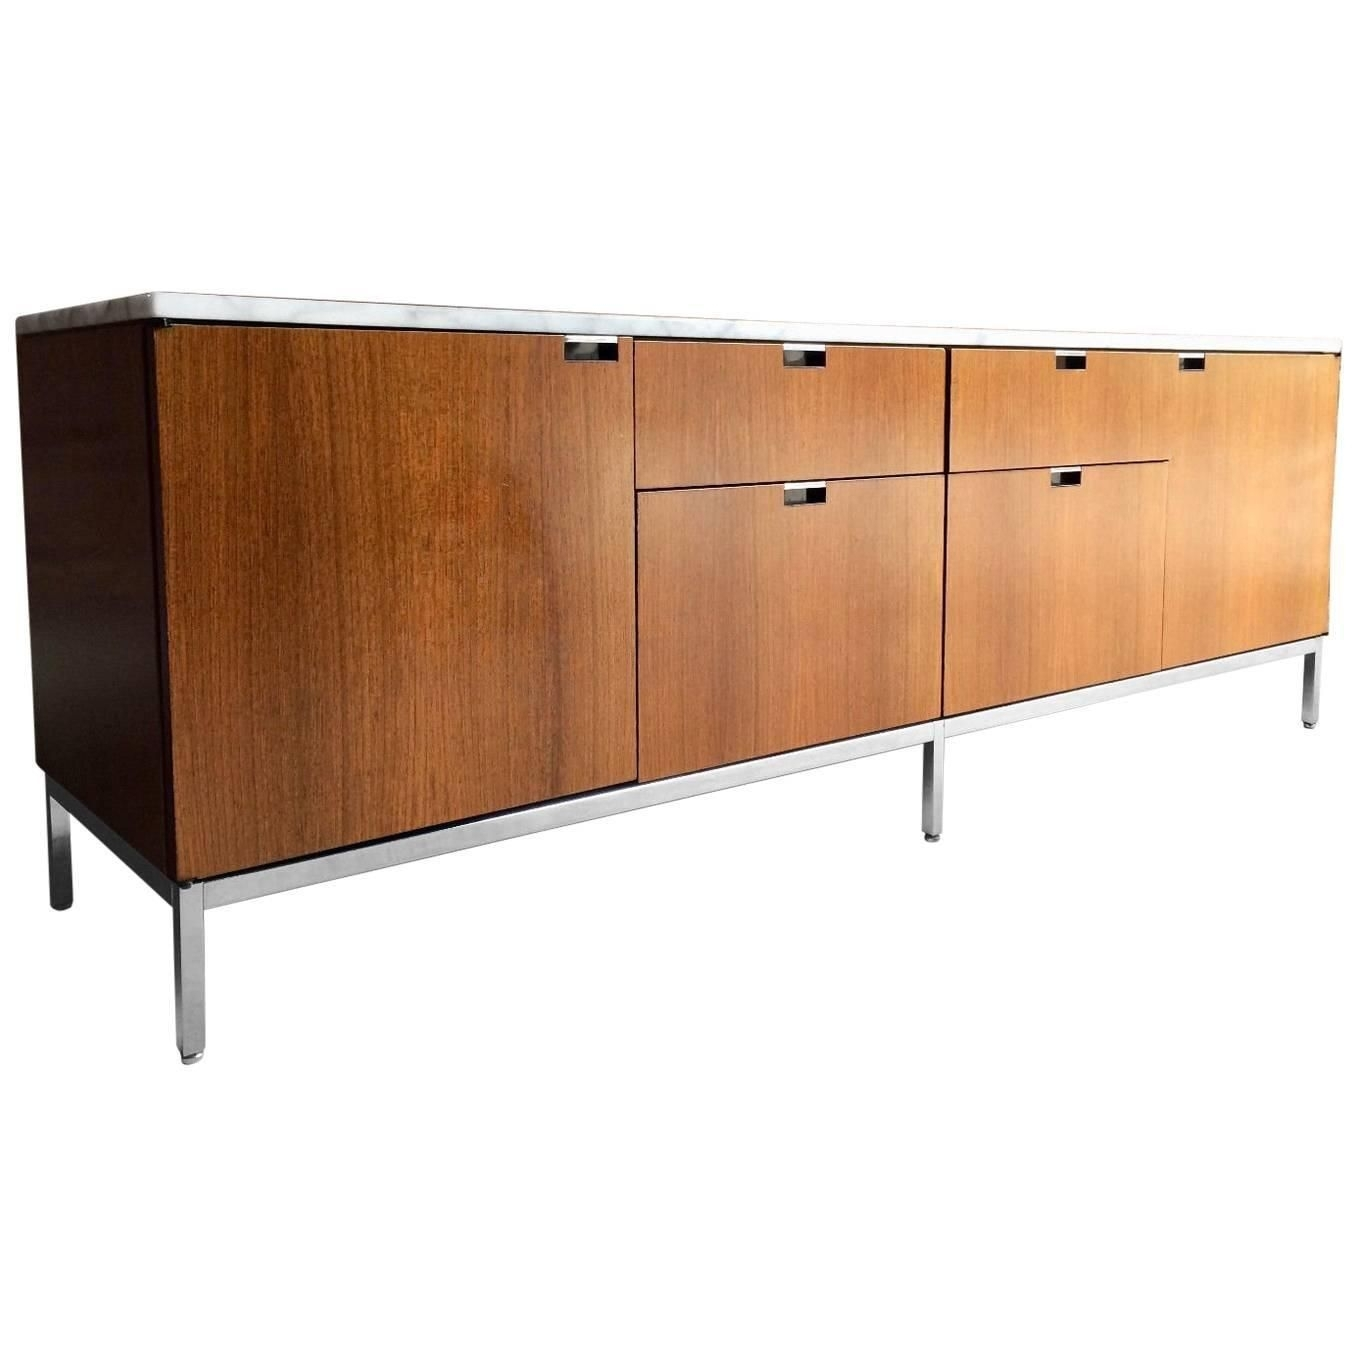 Marble-Topped Light Walnut Credenza Or Sideboardflorence Knoll with regard to Starburst 3 Door Sideboards (Image 15 of 30)